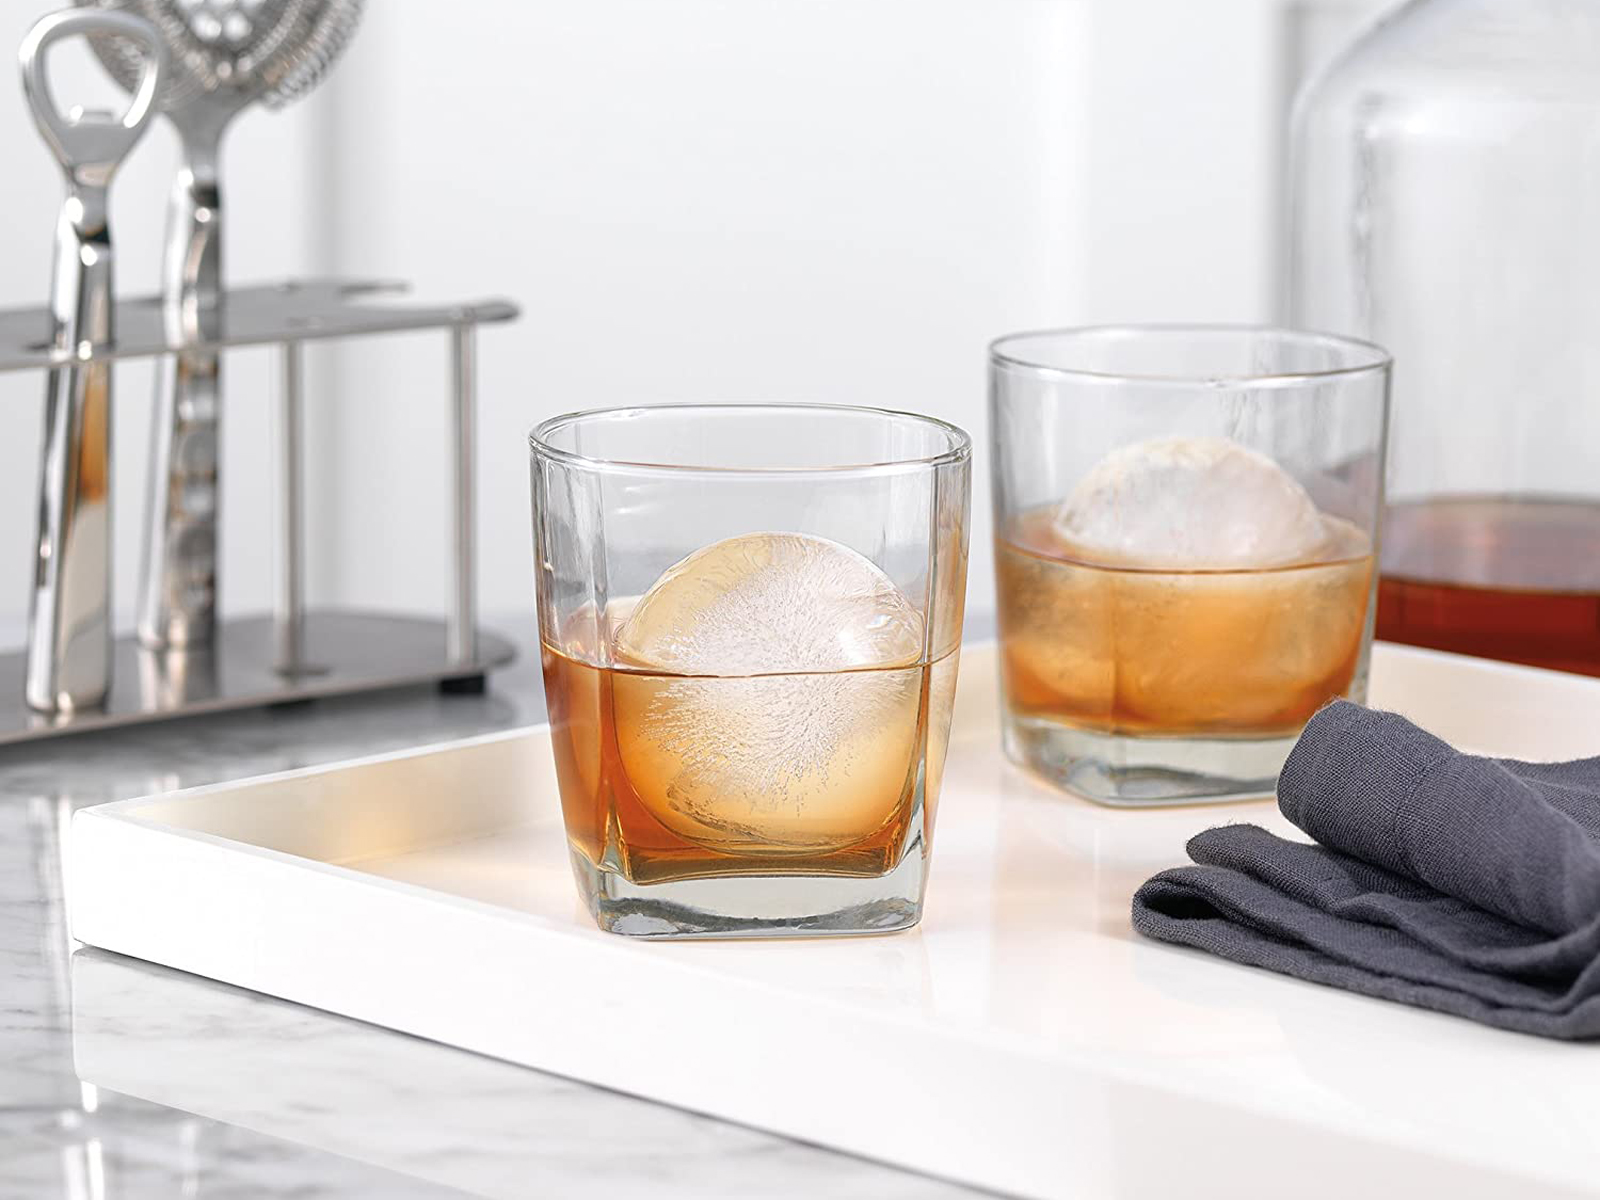 tovolo ice ball maker ice spheres